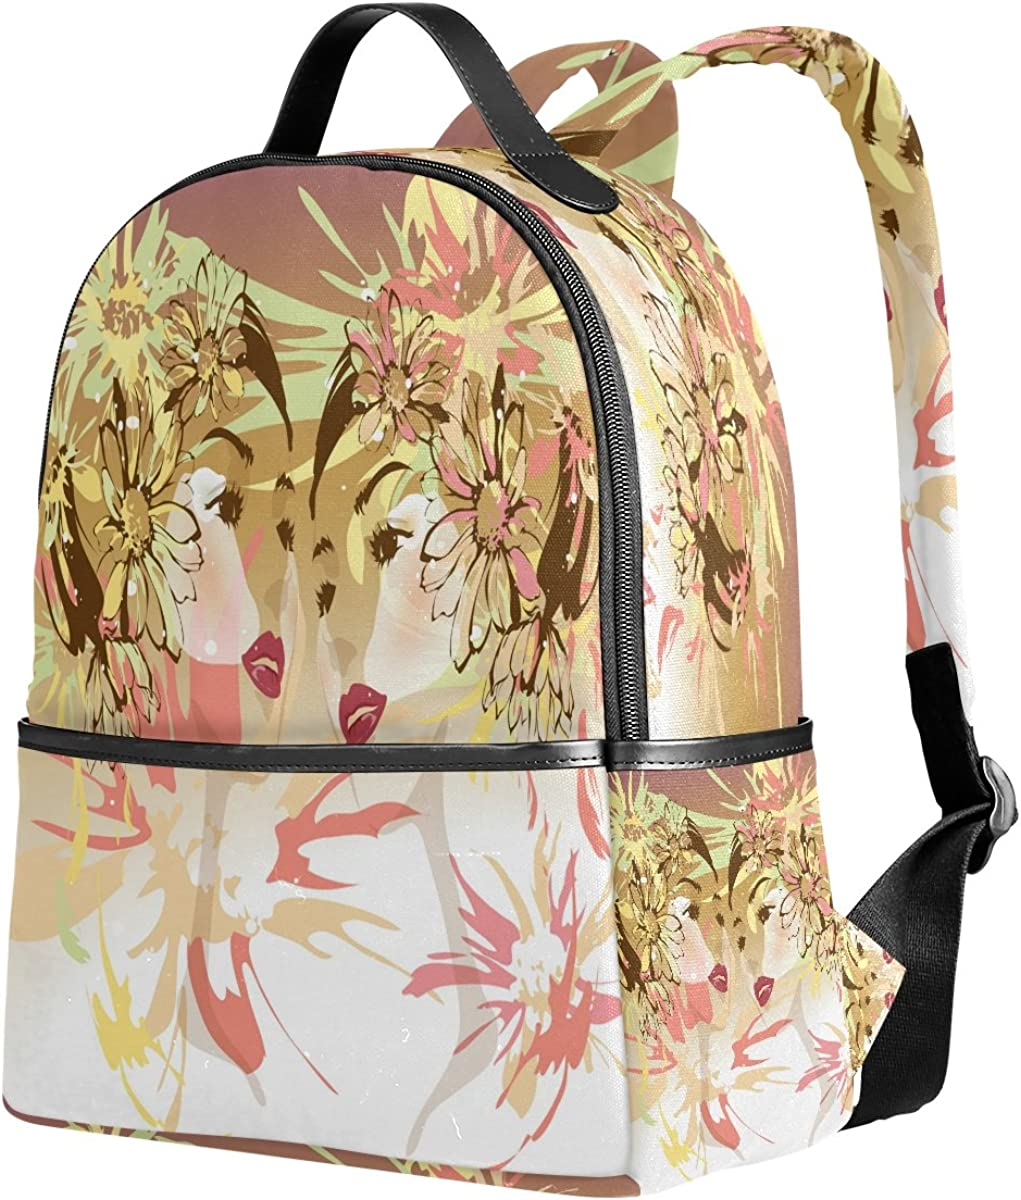 Mr.Weng Daisy Girl Printed Canvas Backpack For Girl and Children